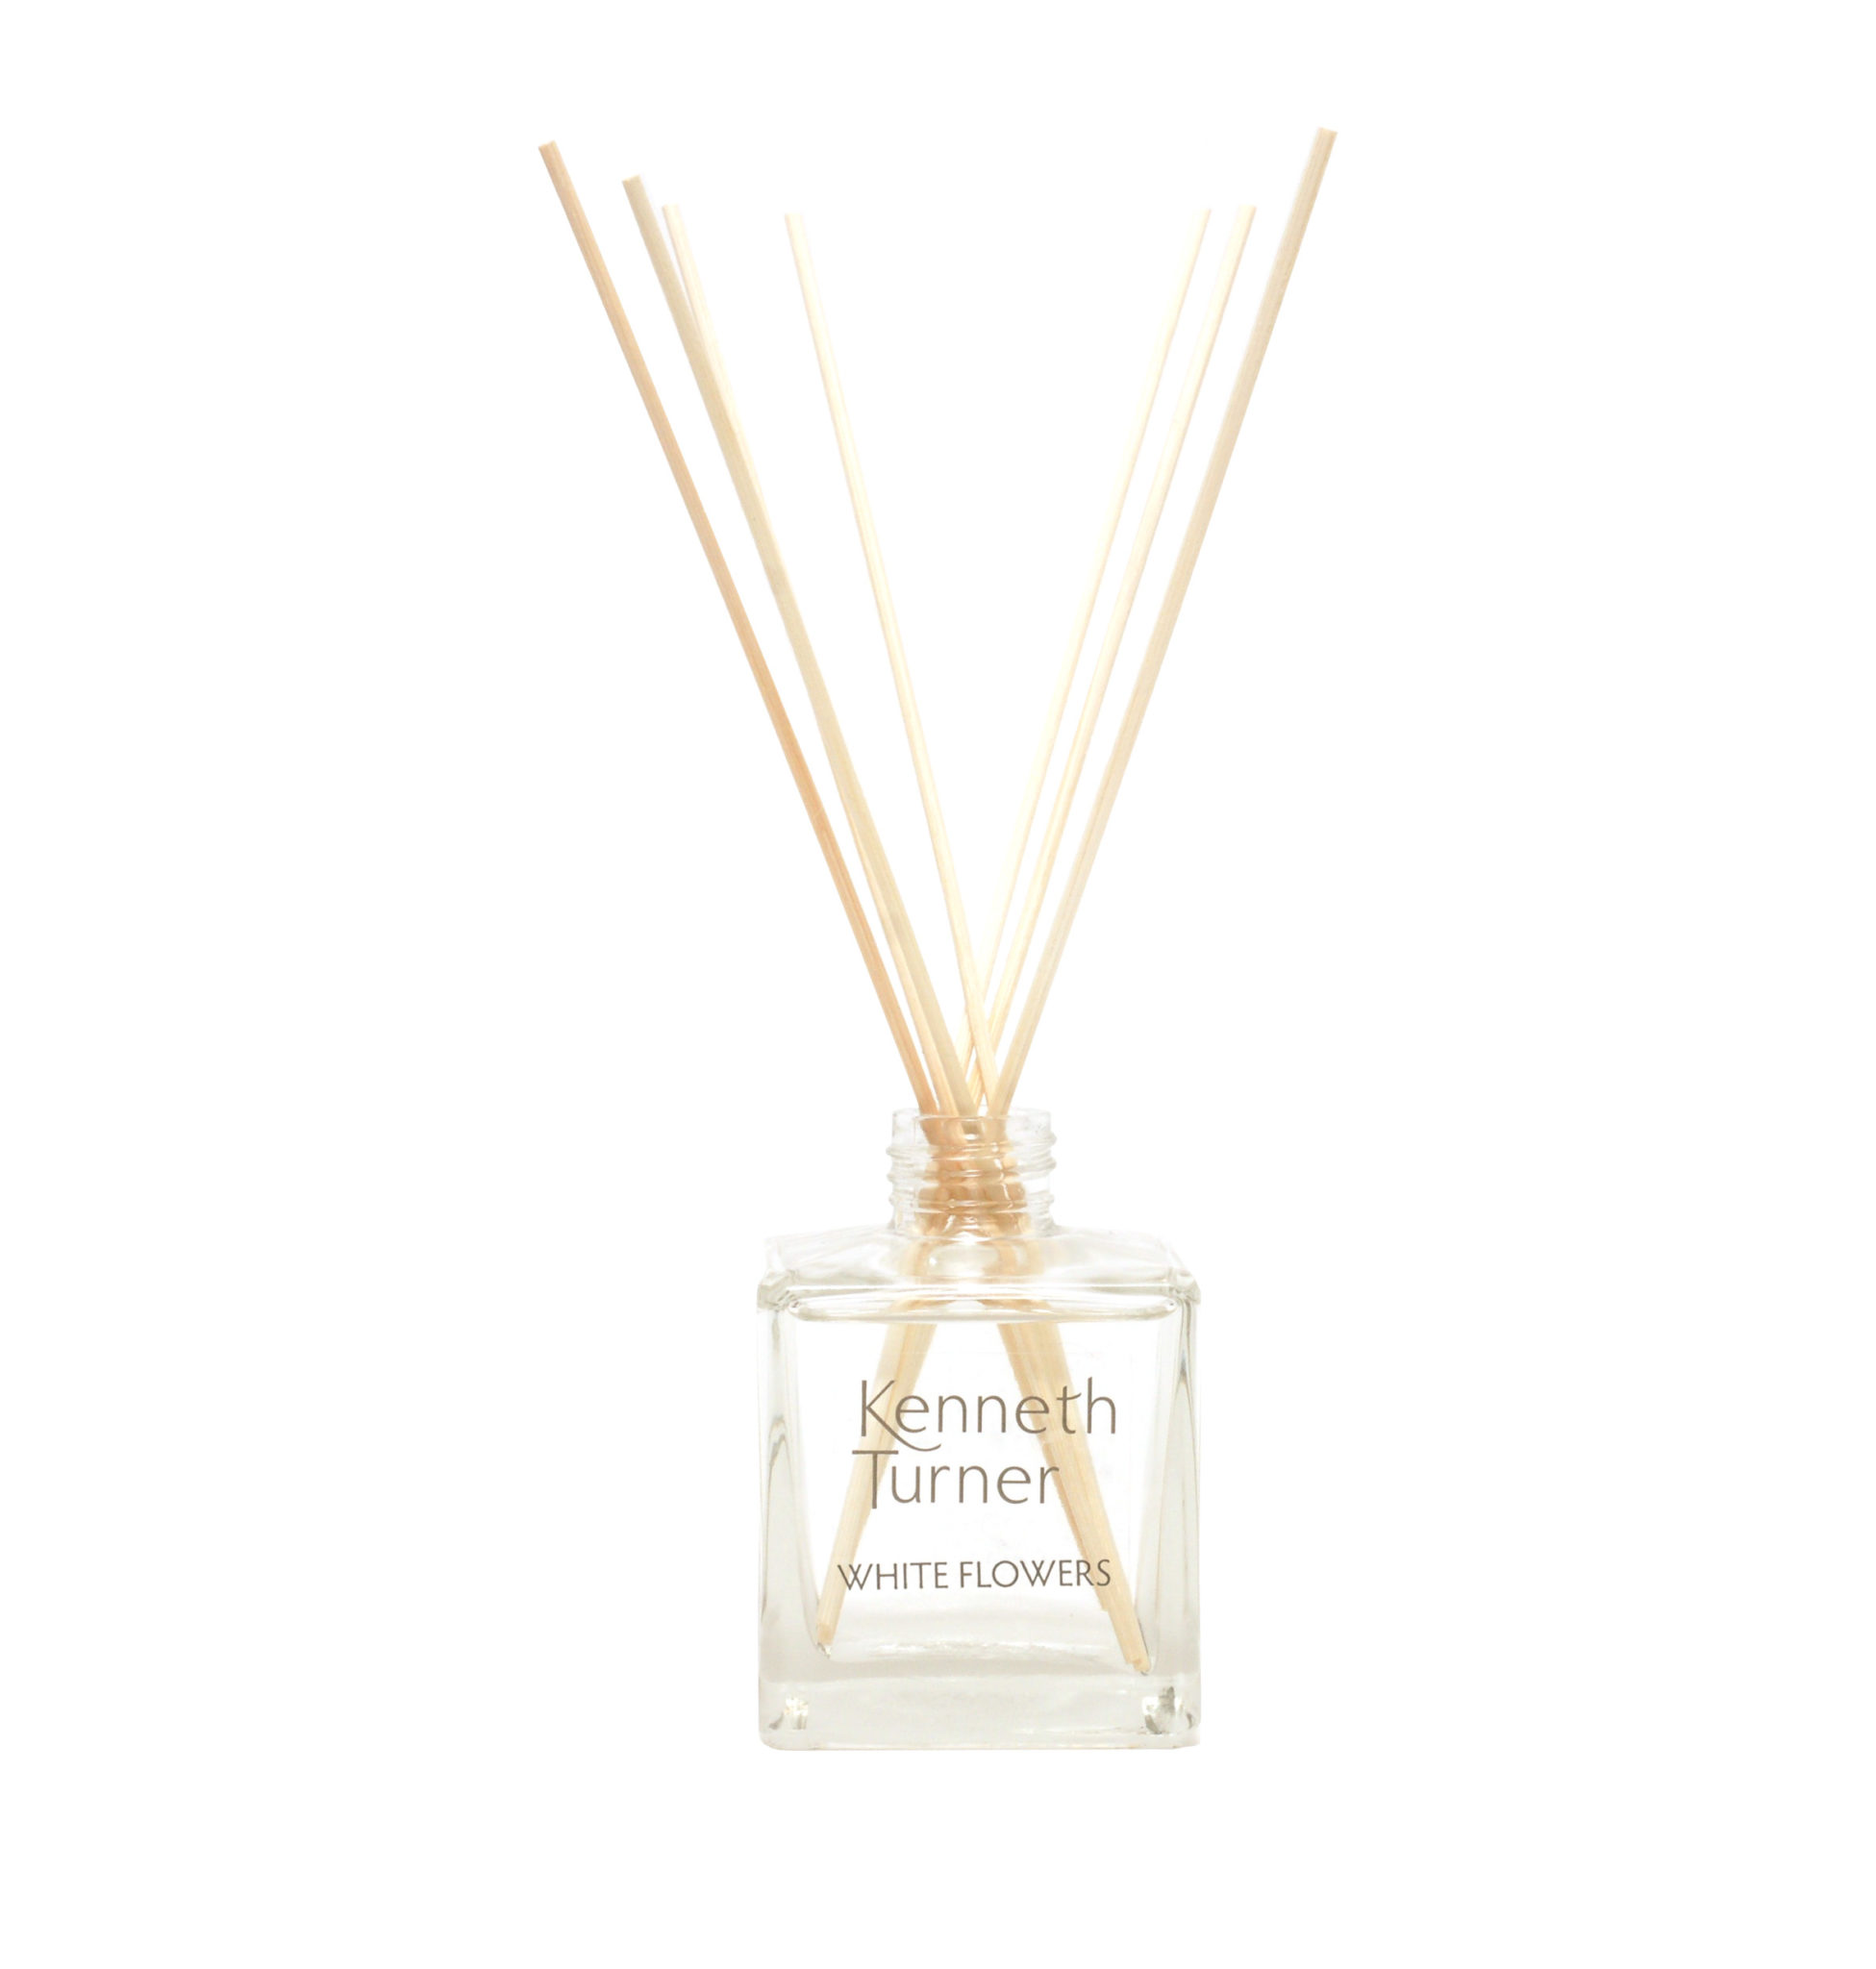 White Flowers Reed Diffuser Kenneth Turner